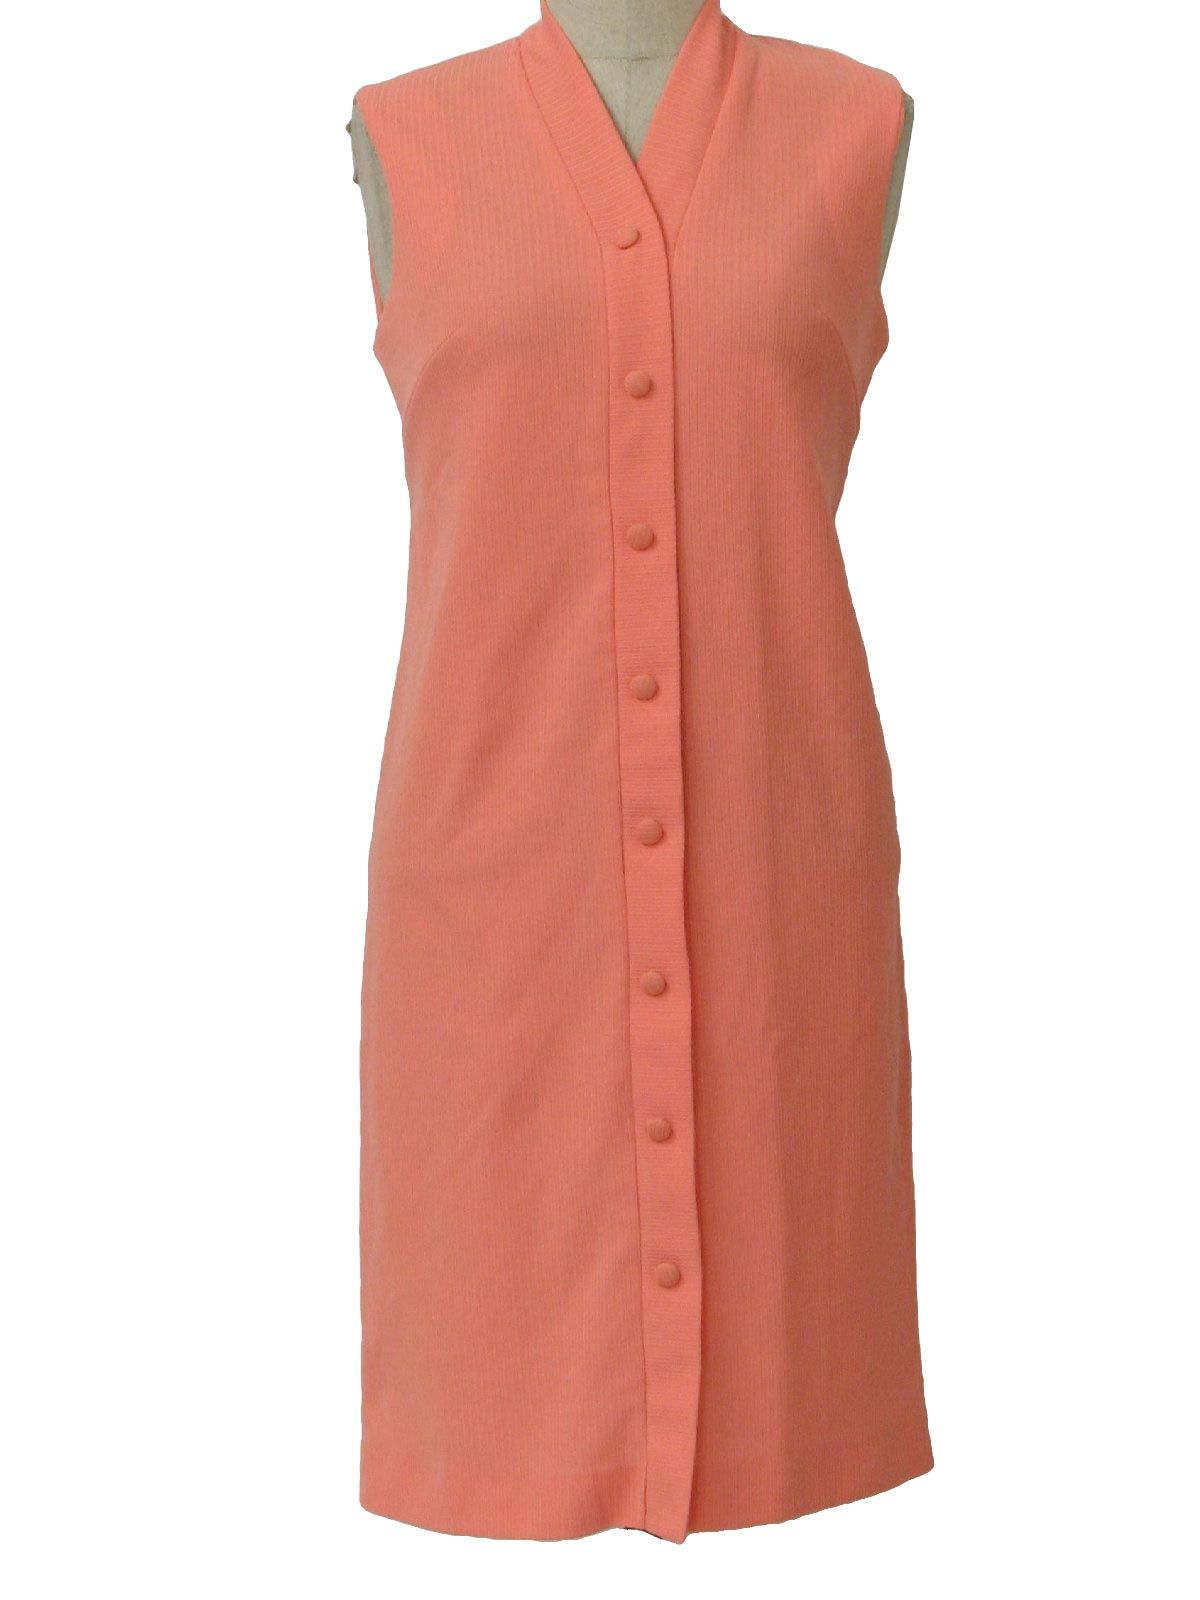 70s - peachsleeveless mid length shift style knit dress. A rib texture, with bust darts, faux front button placket with fabric covered accent buttons, a banded V-neck and back zip closure.